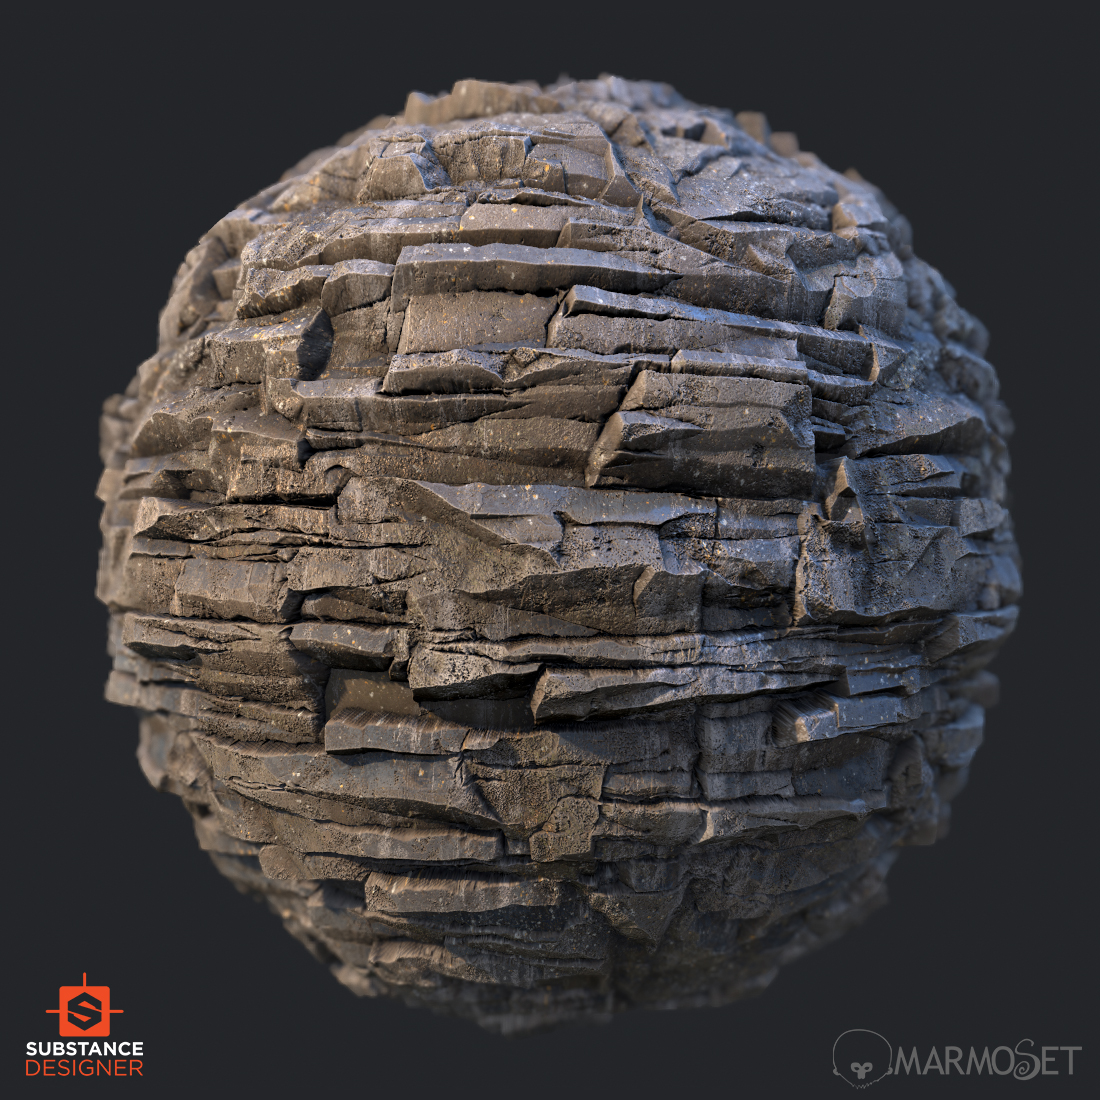 Layered cliff rock substance material ball